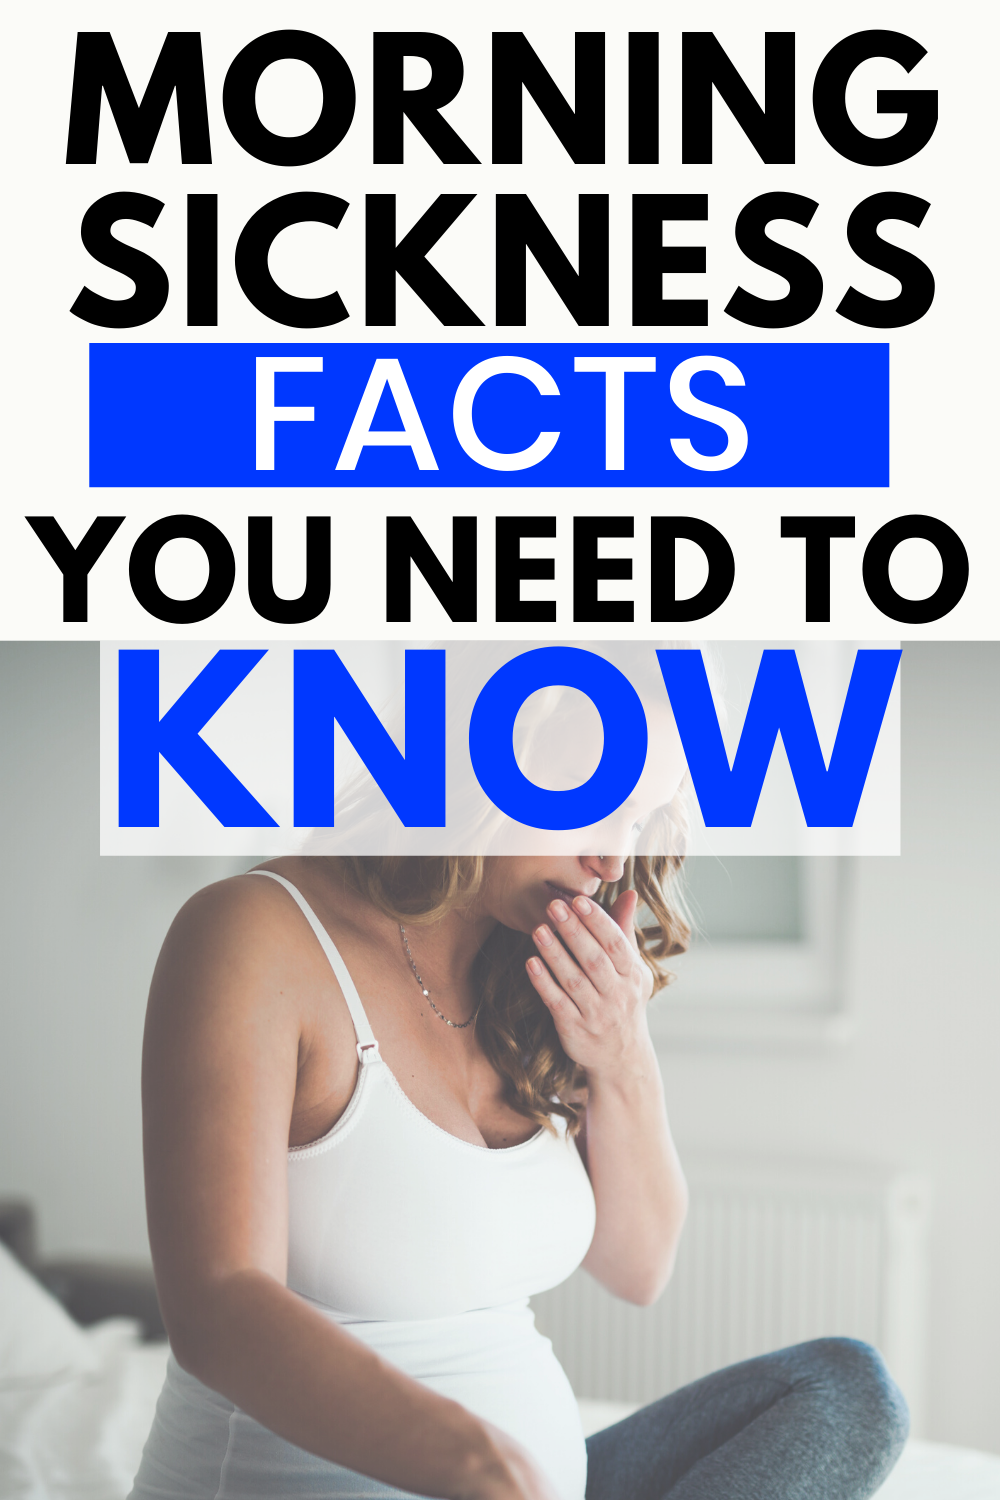 When Does Morning Sickness Start?